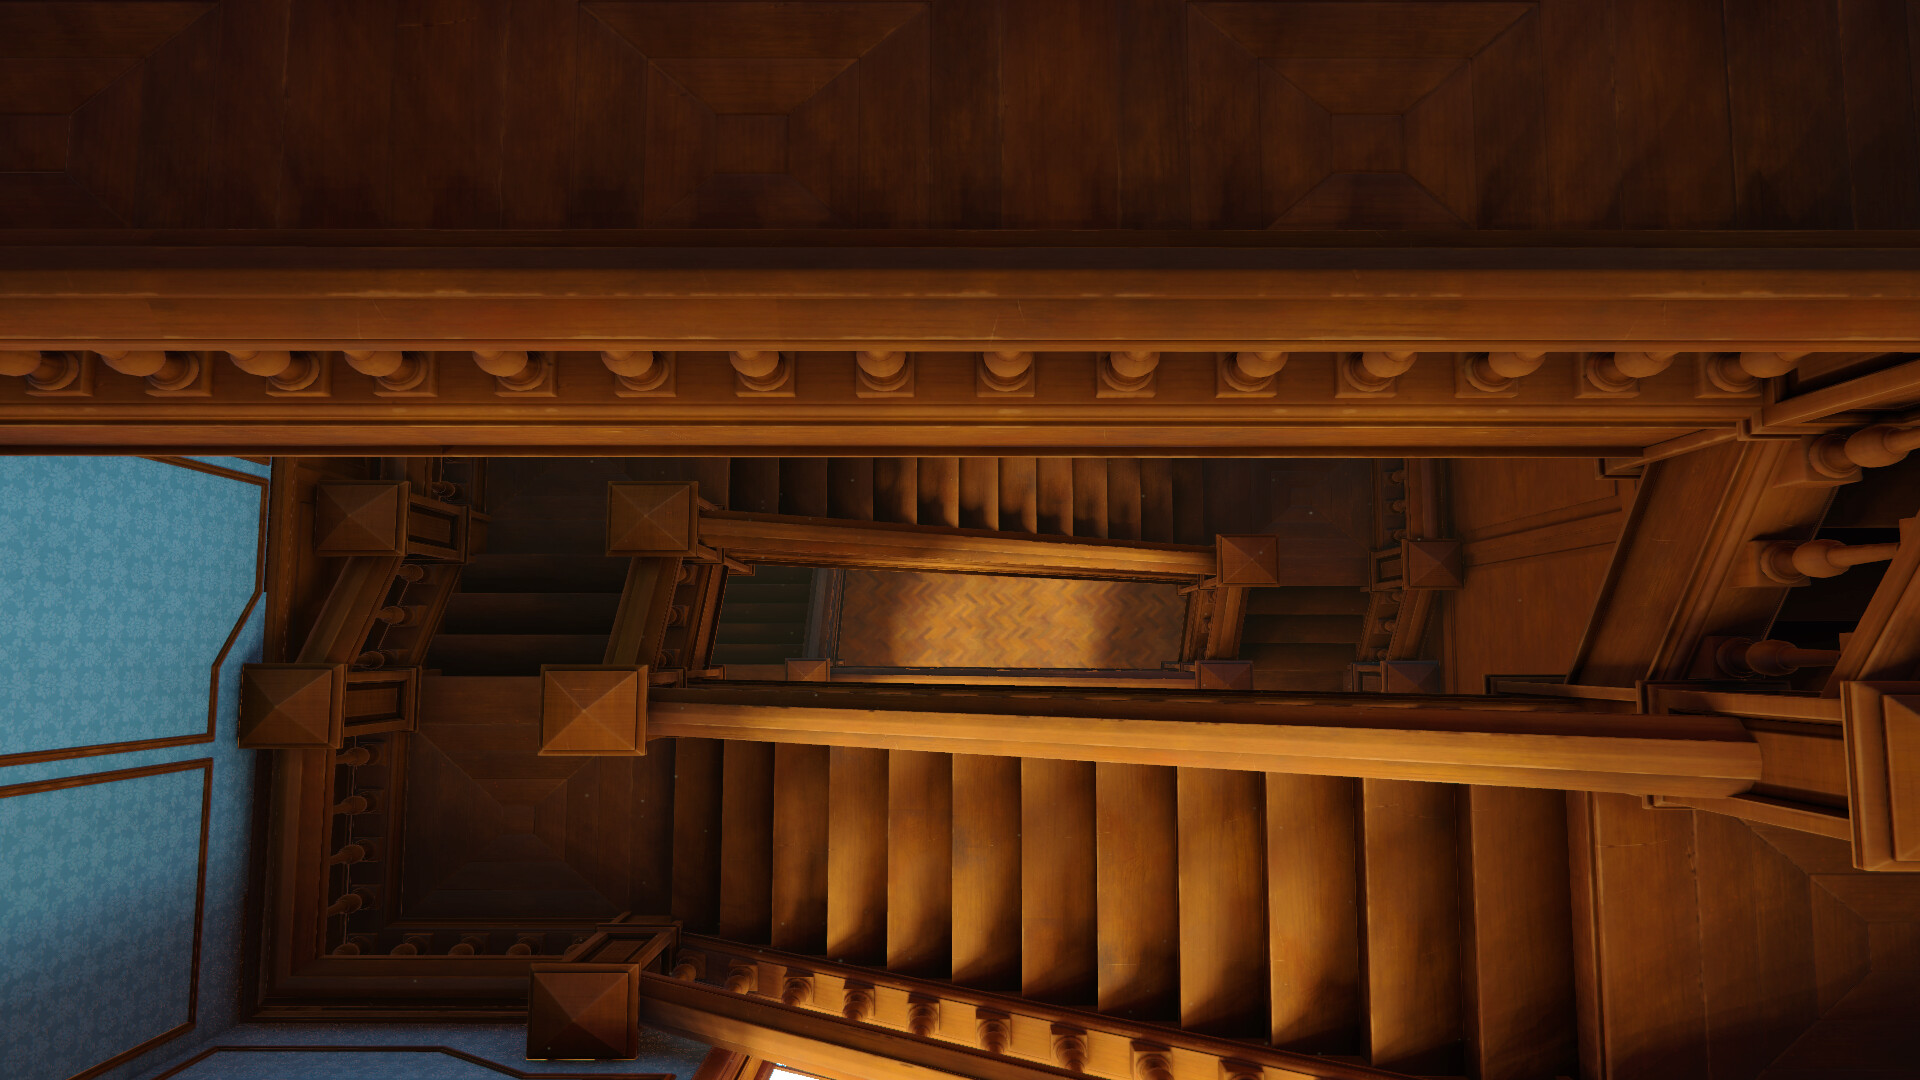 The final render is running on Unity with baked light using the Bakery Asset